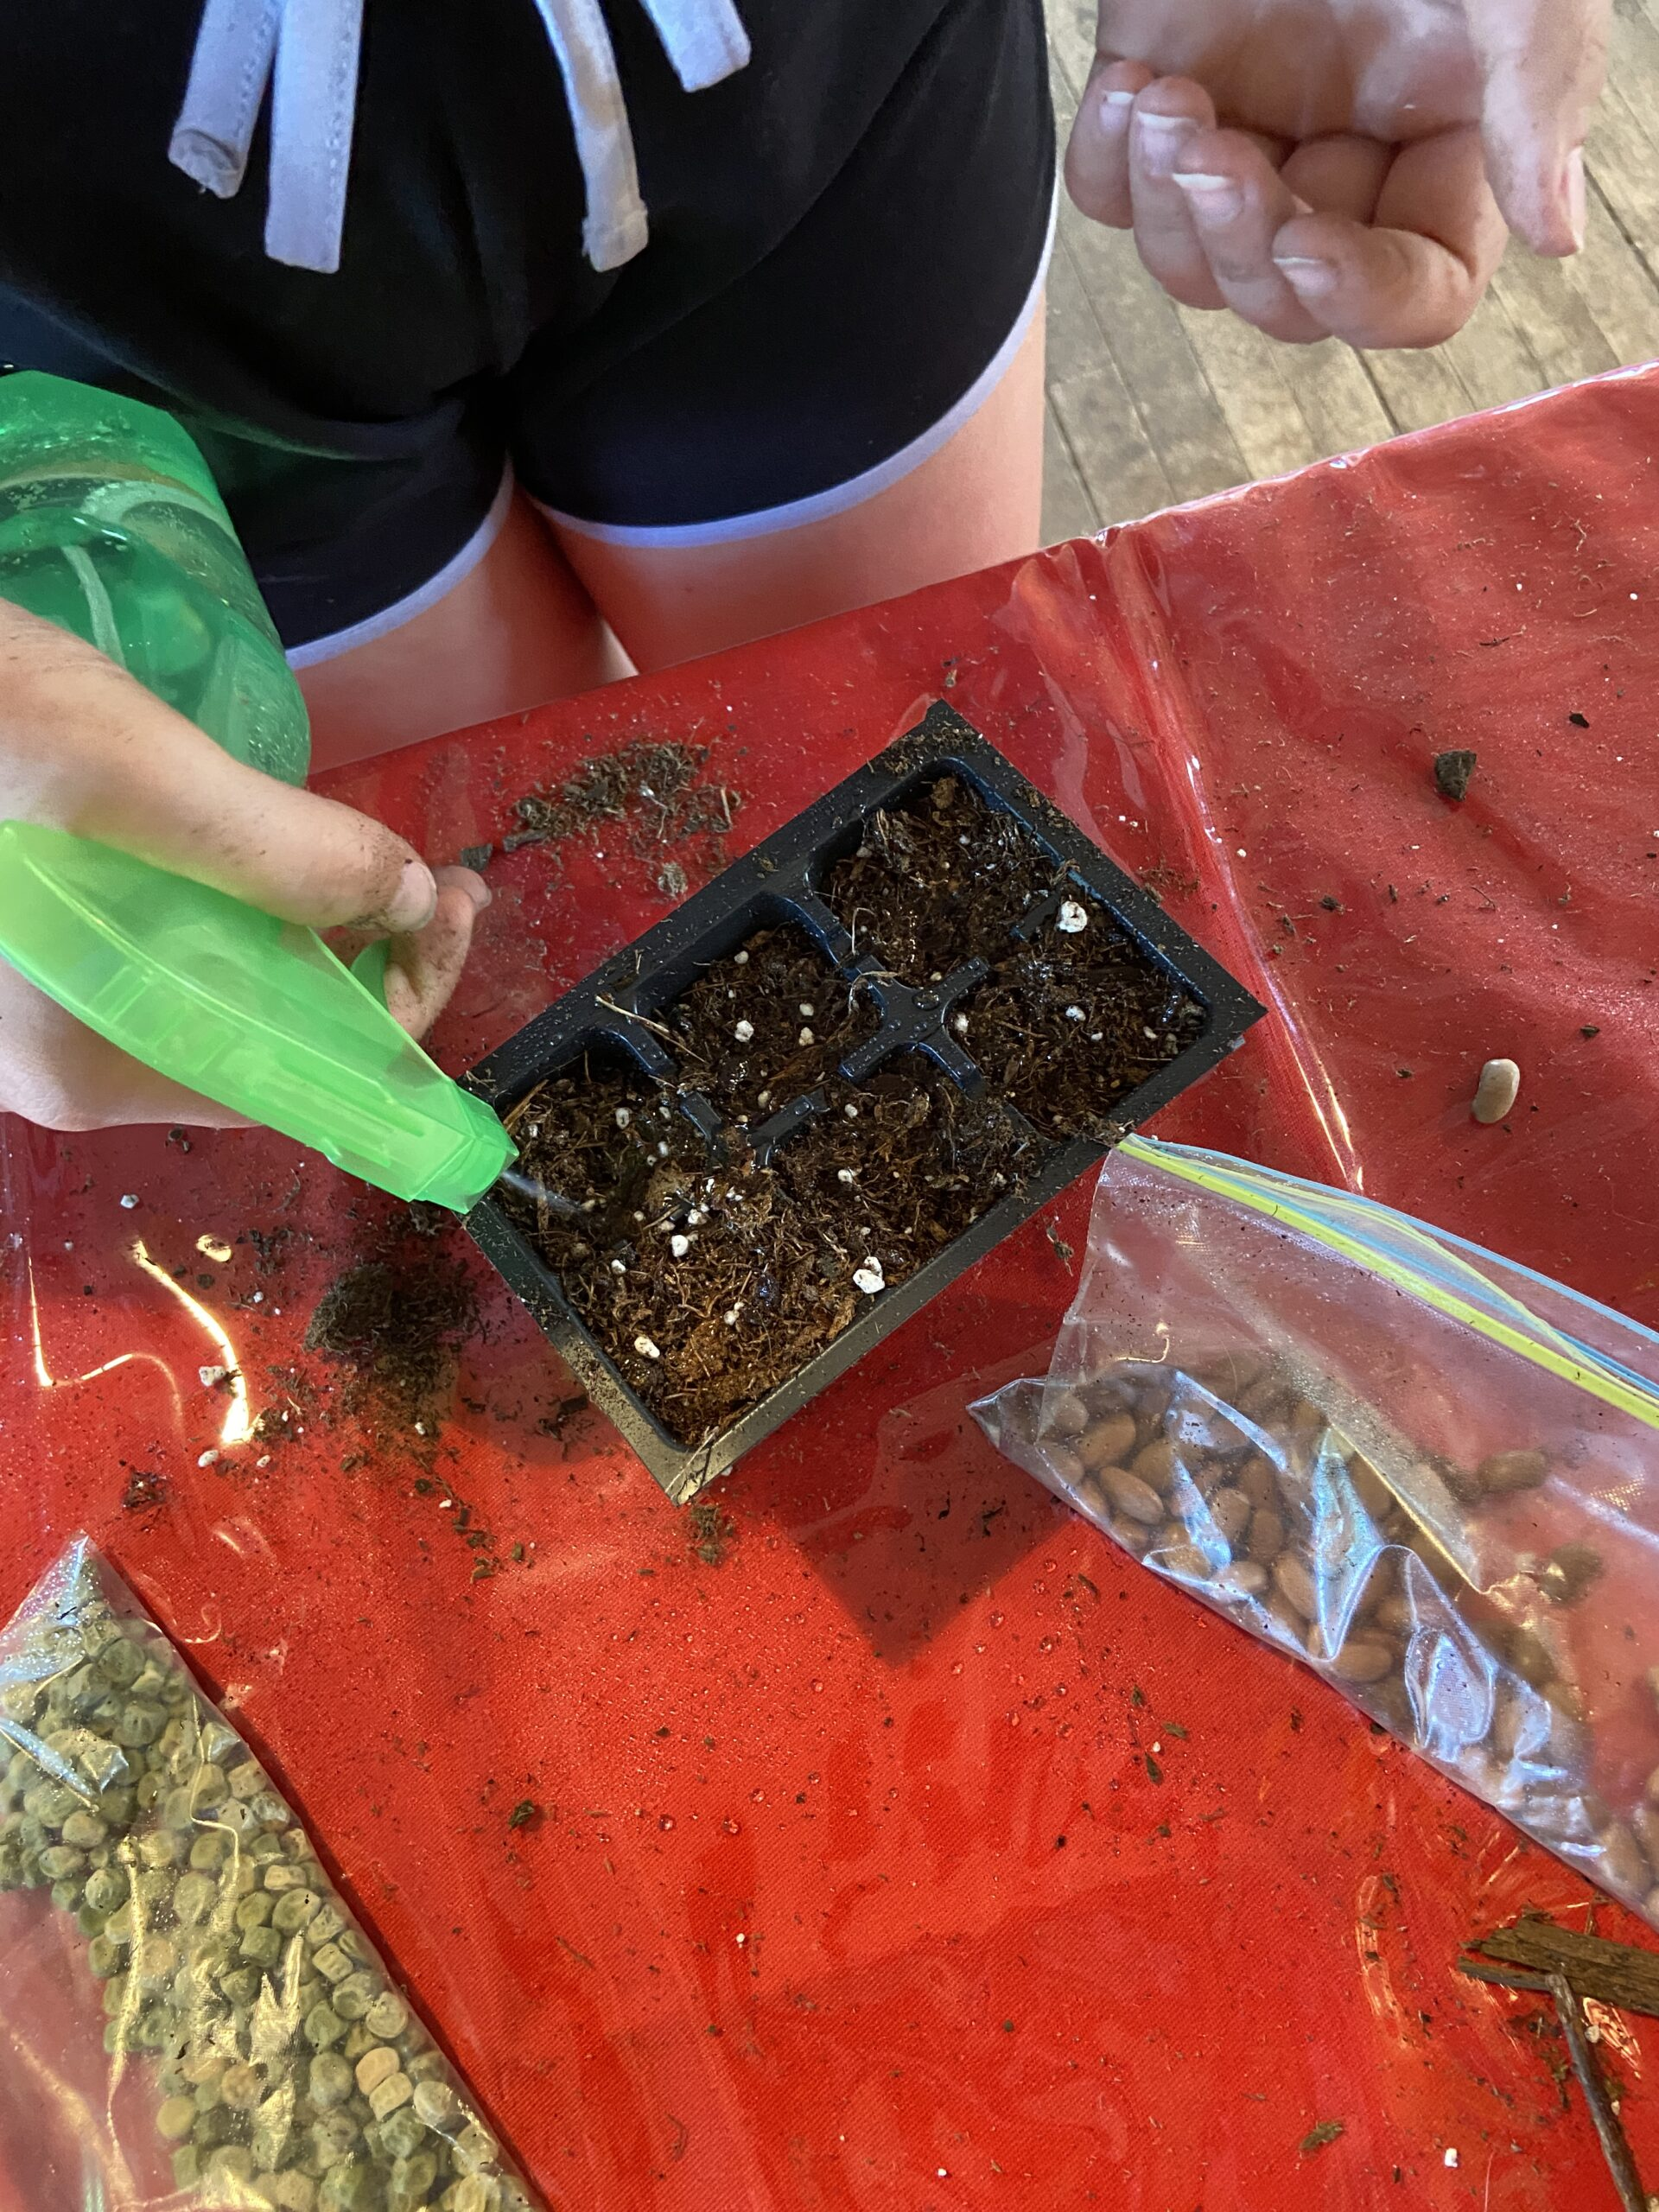 hand using a spray bottle to water seeds in container